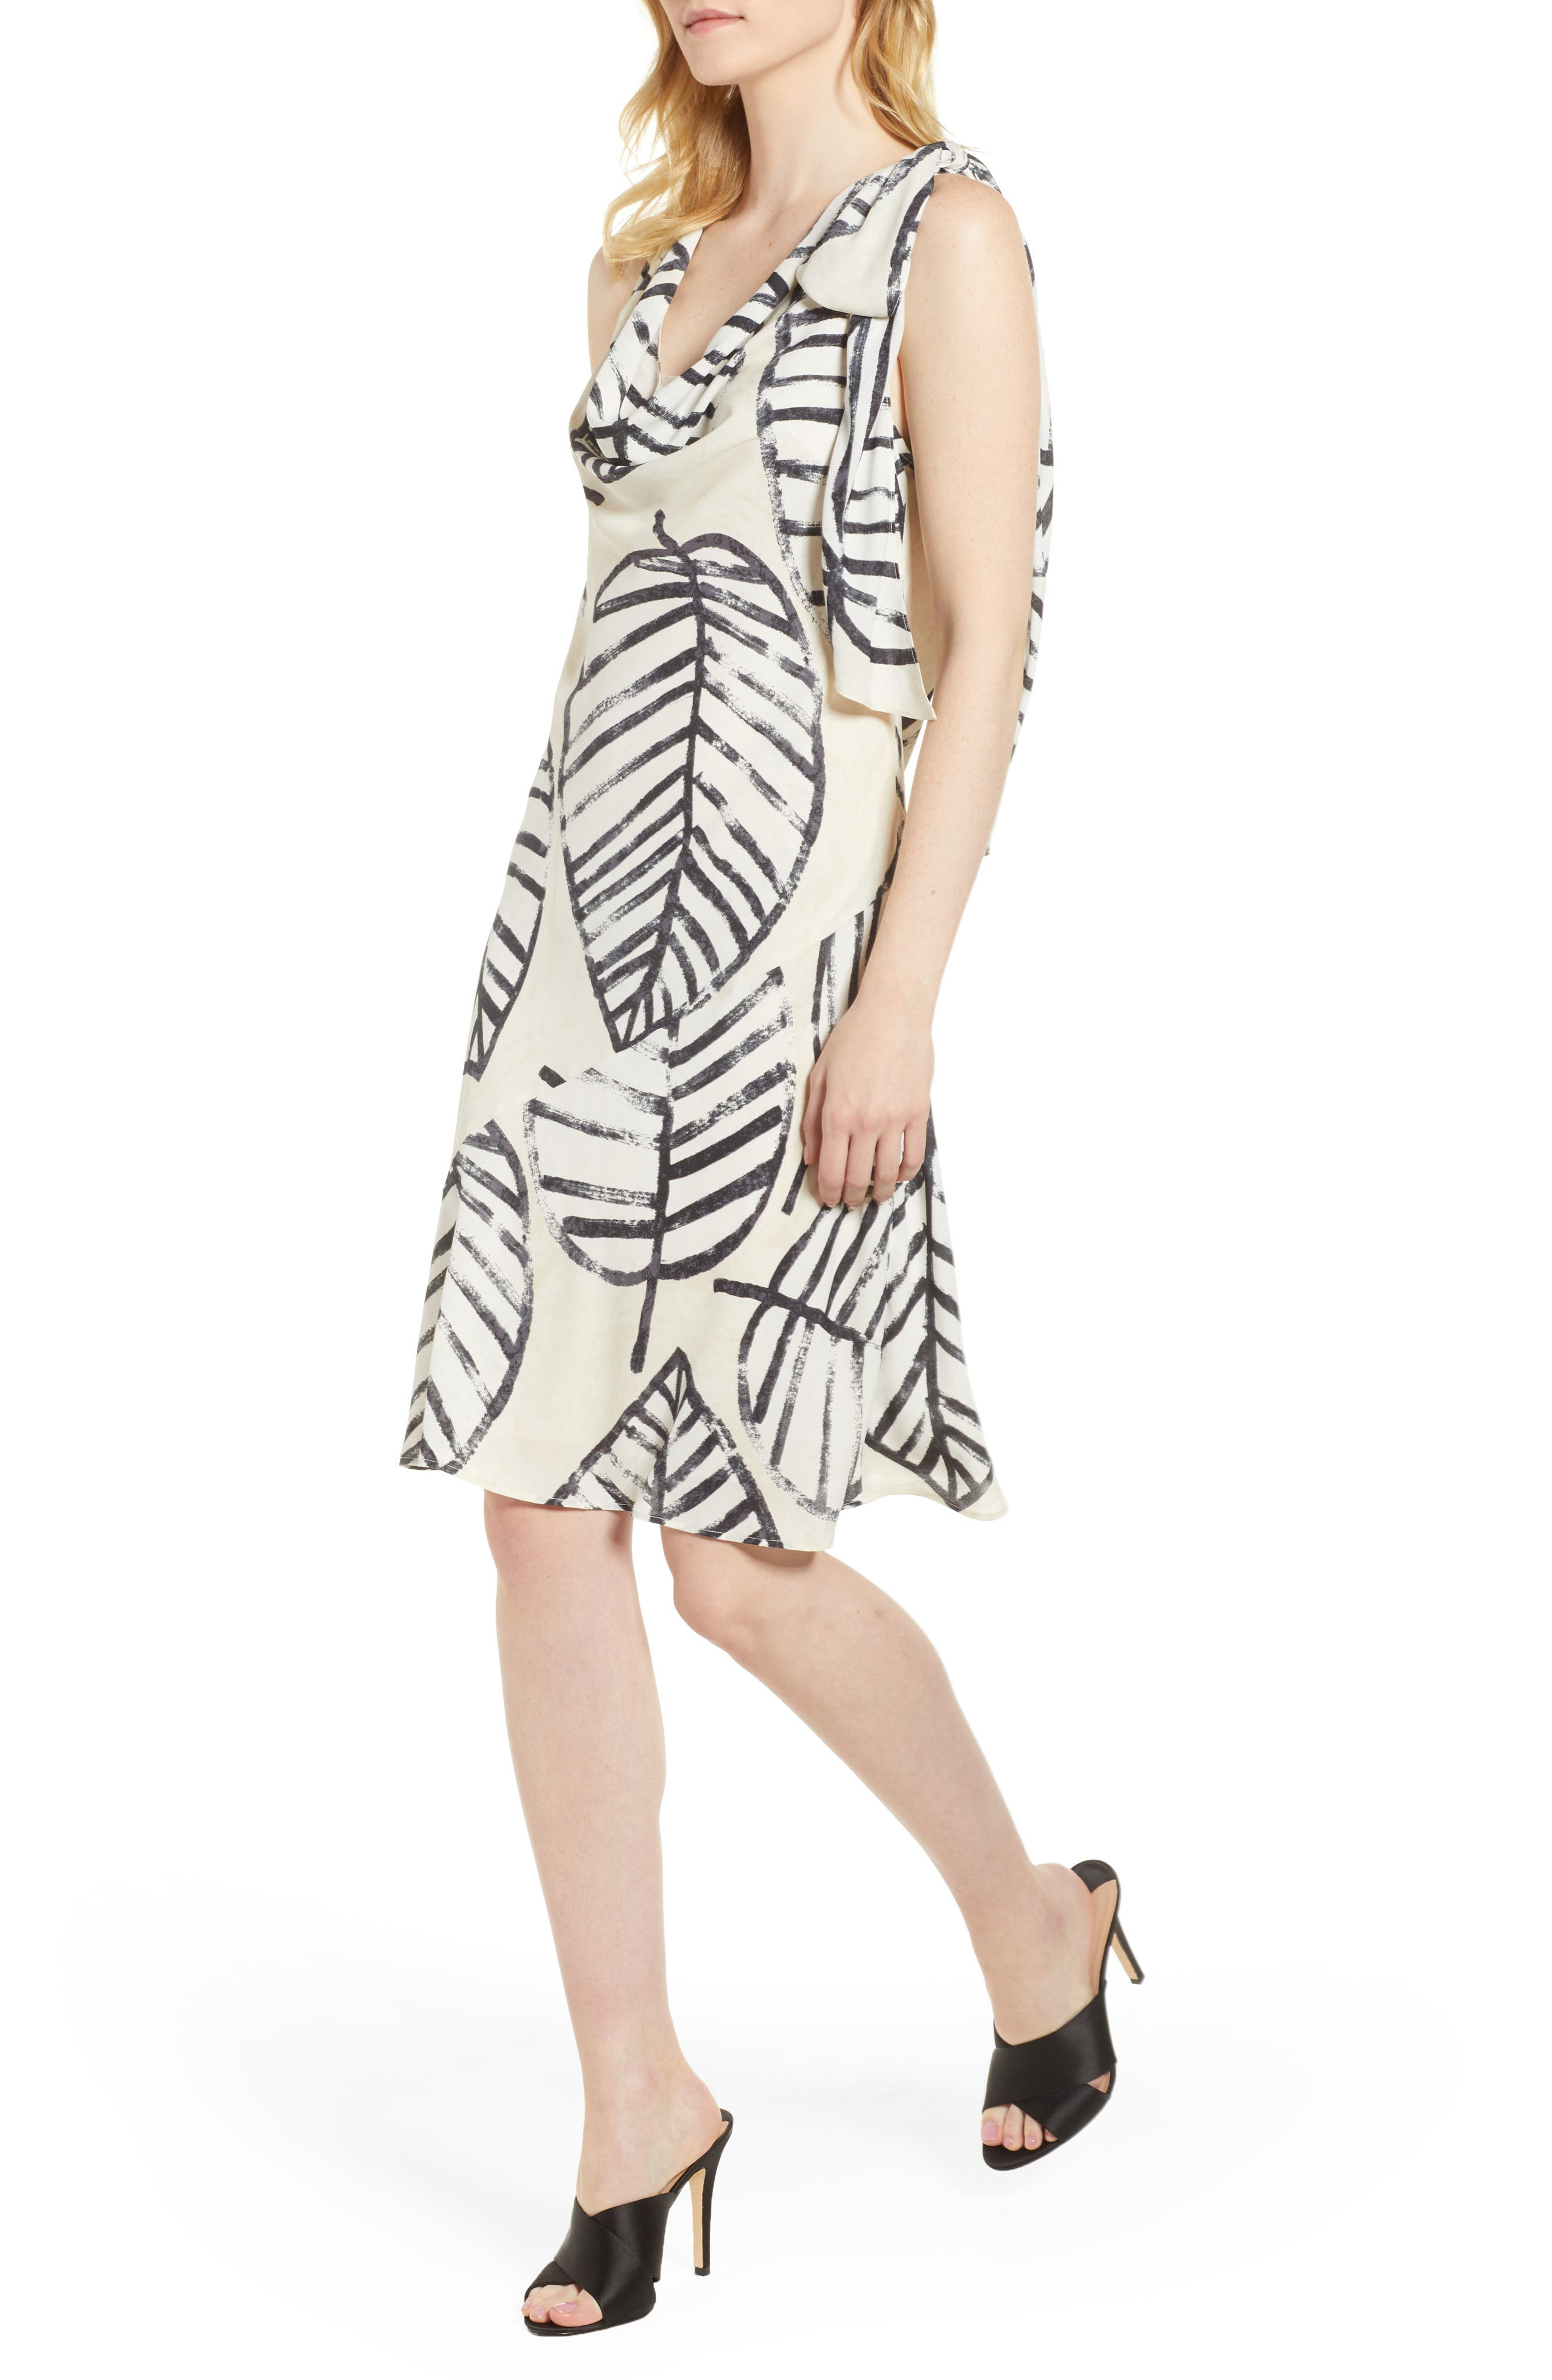 Etched Leaves Tie Dress,                         Main,                         color, 250